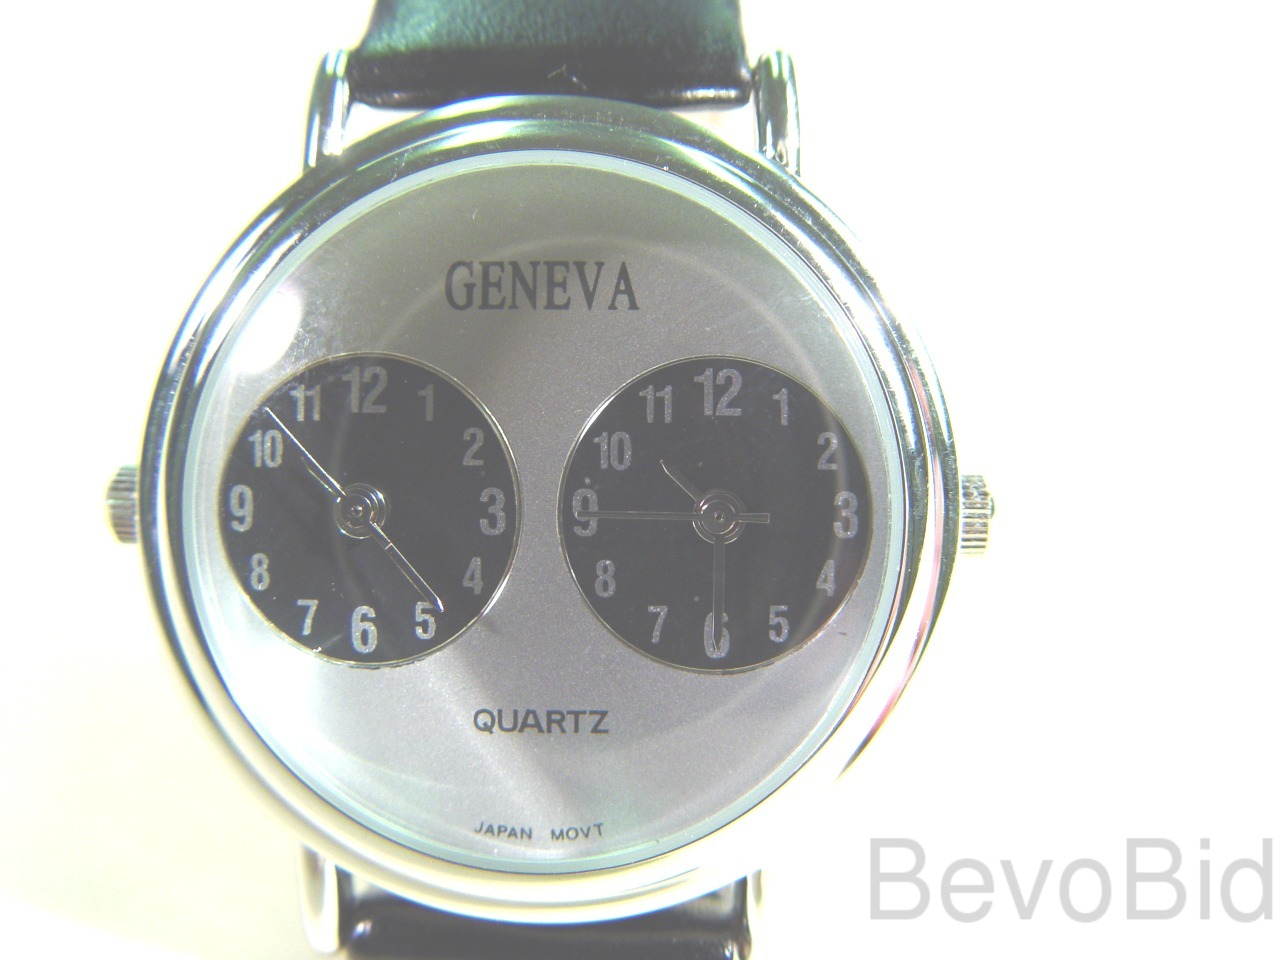 Geneva Dual-Time Unisex Watch - New - Free Shippin